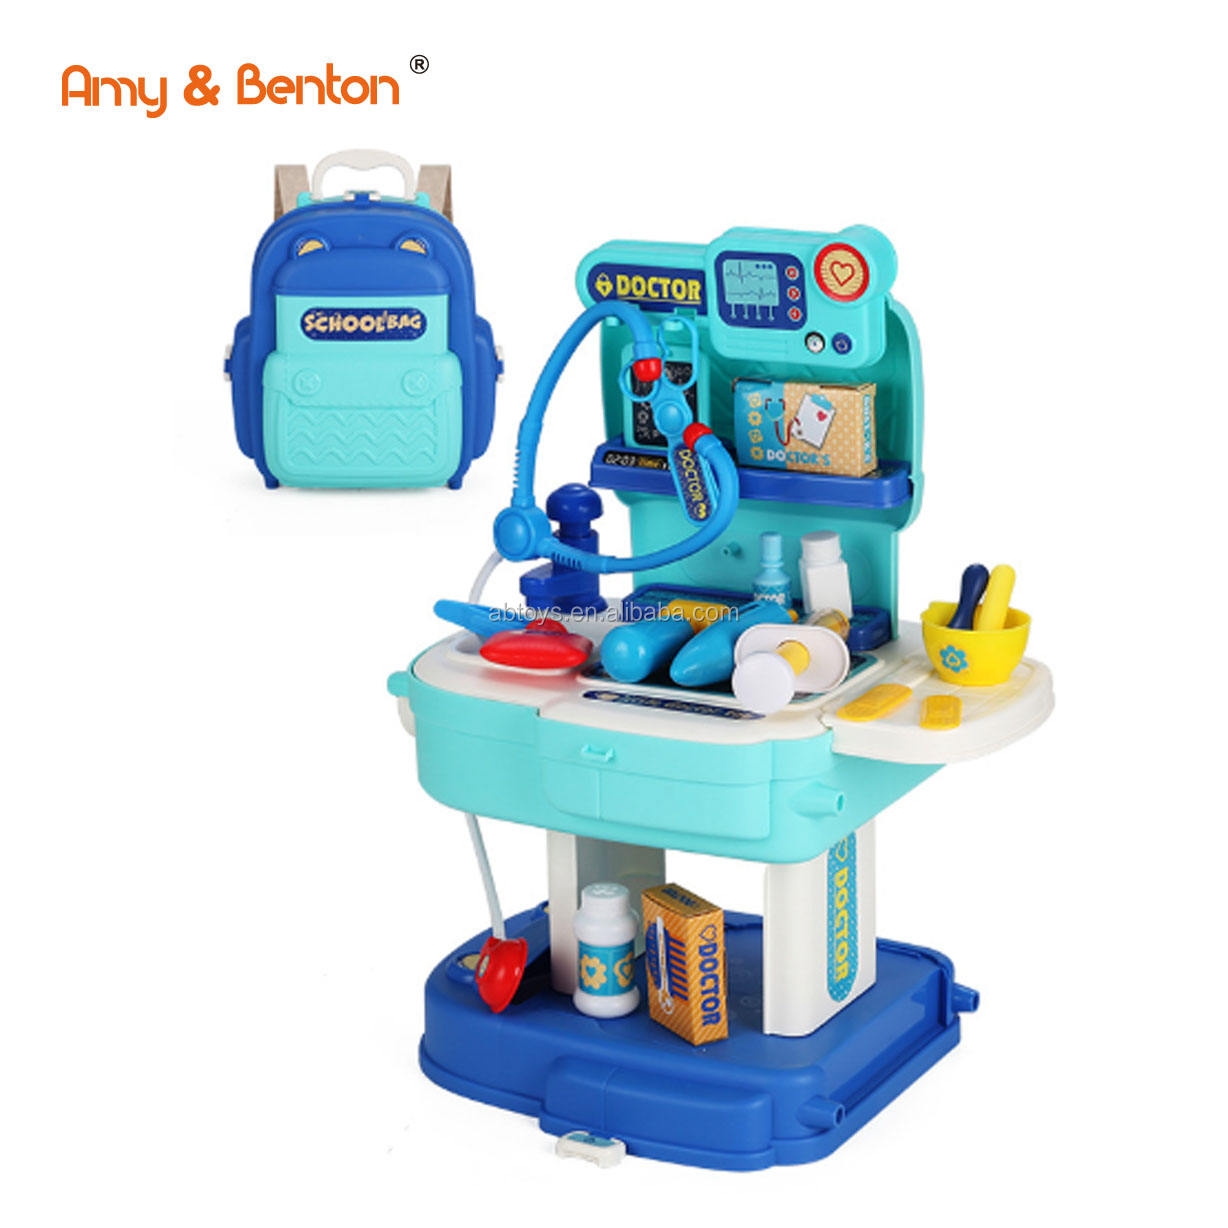 Amazon Best Selling Kids Doctors Toy Play Set Kits For Baby